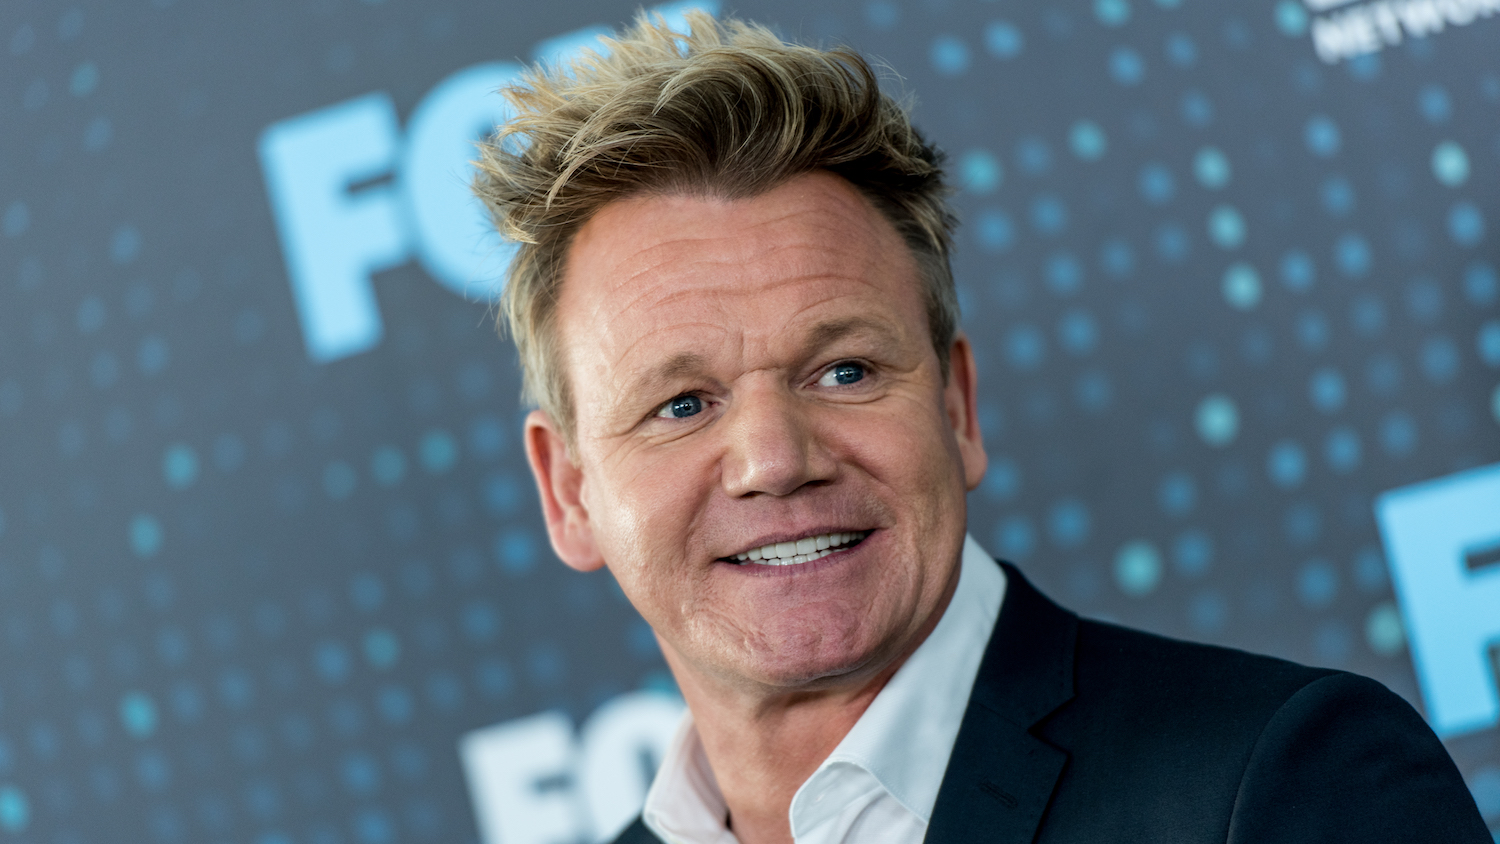 Watch Gordon Ramsay Host 'MasterChef Senior' With James Corden